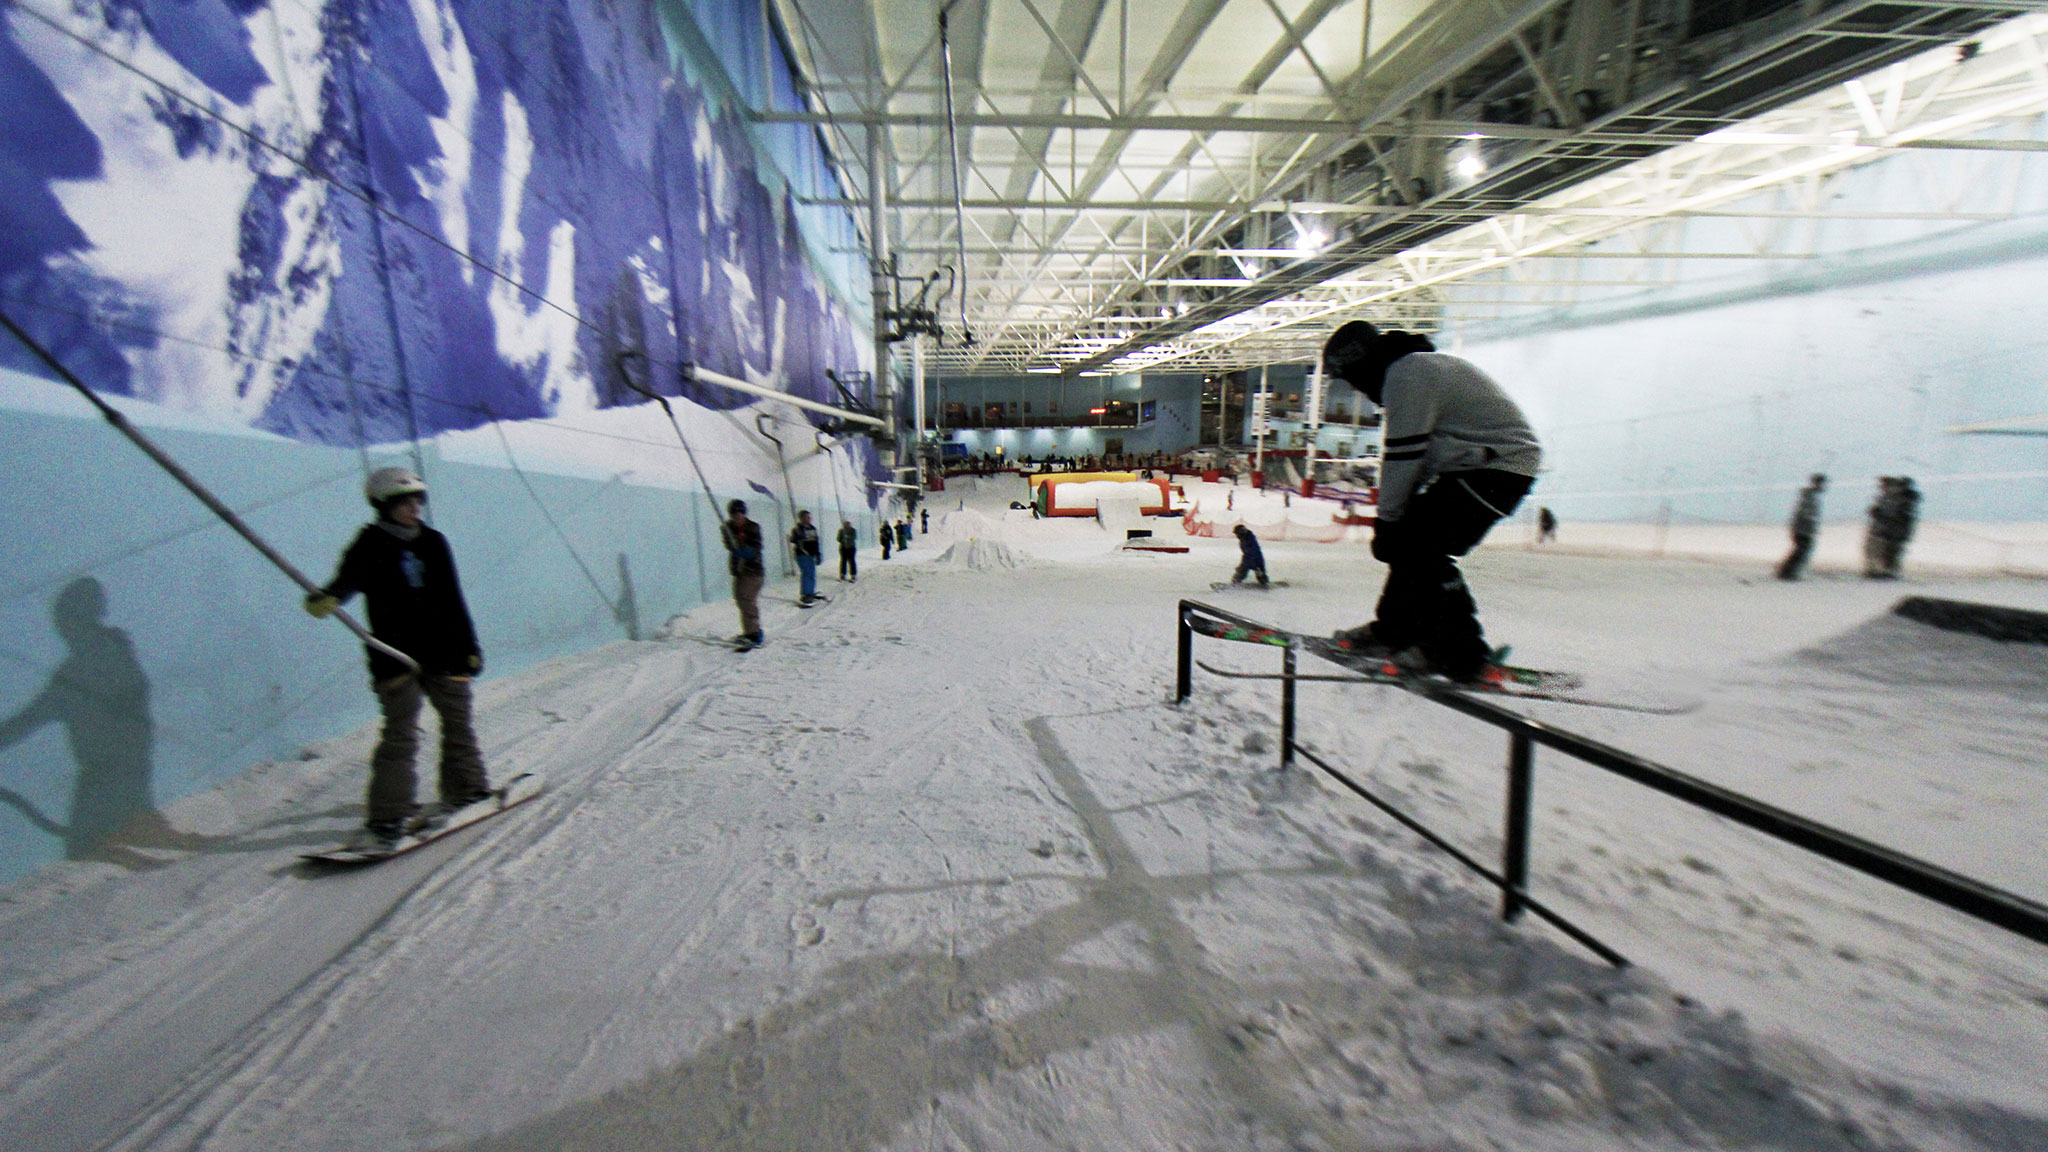 Harry Lovell, Manchester Chill Factor